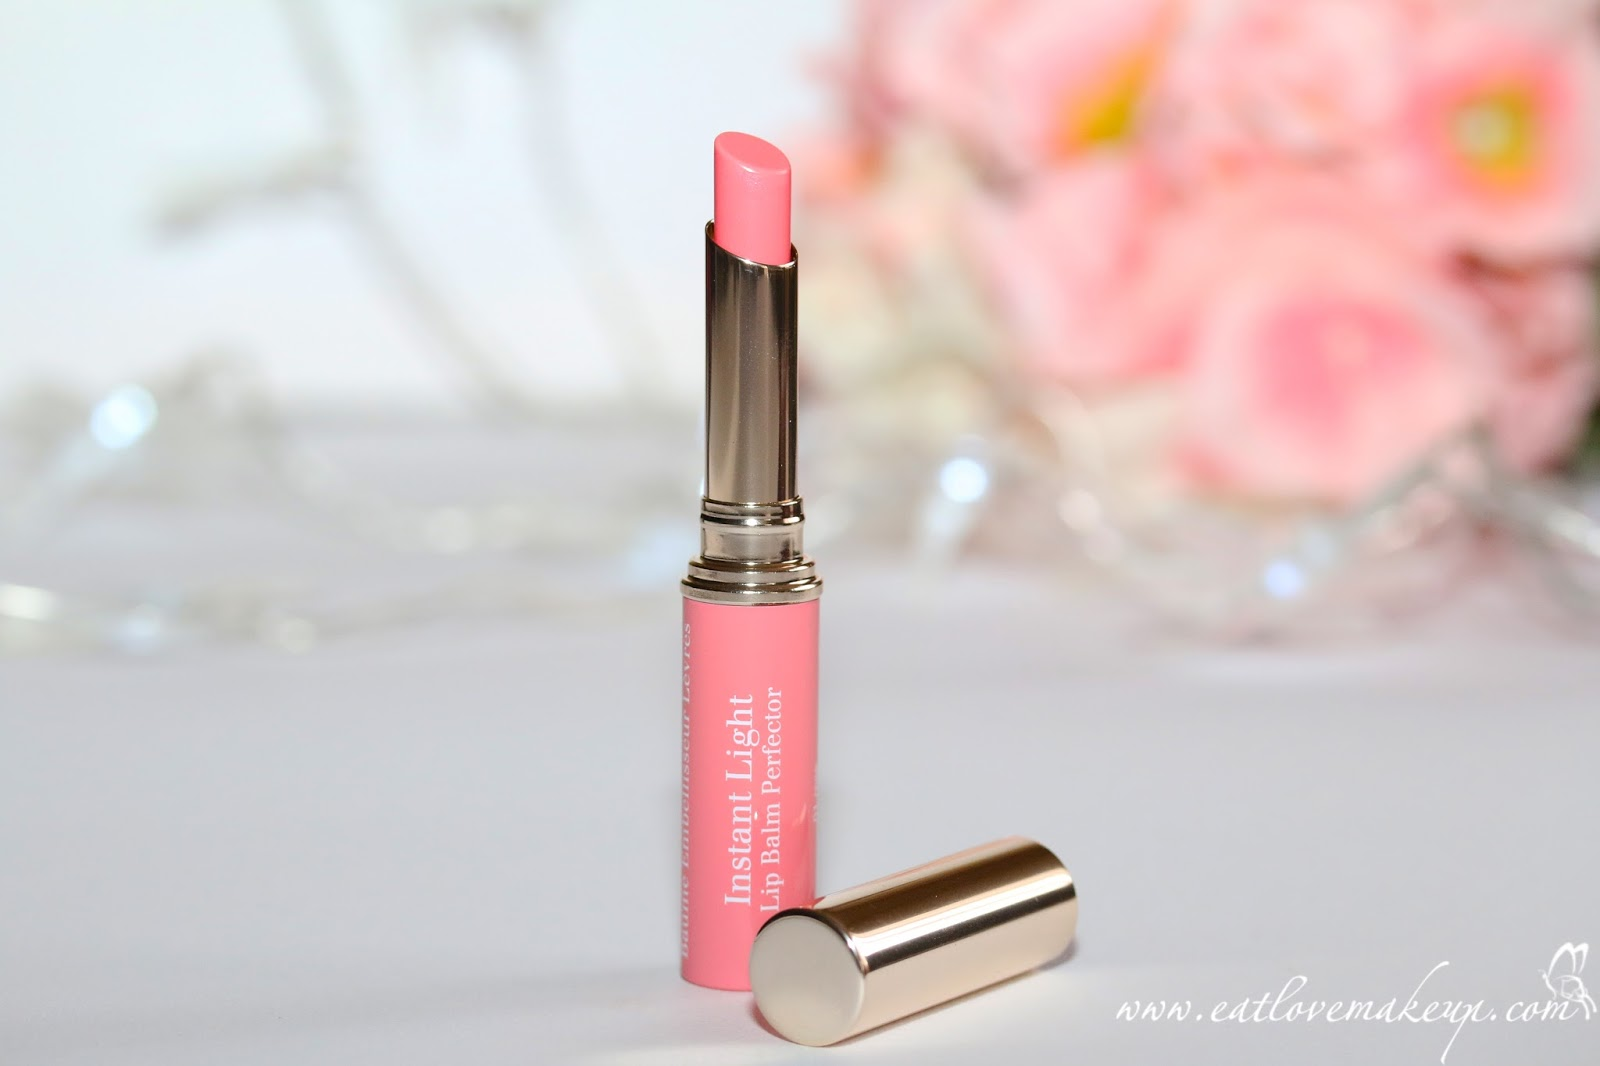 Clarins Instant Light Natural Lip Balm Perfector 01 Rose